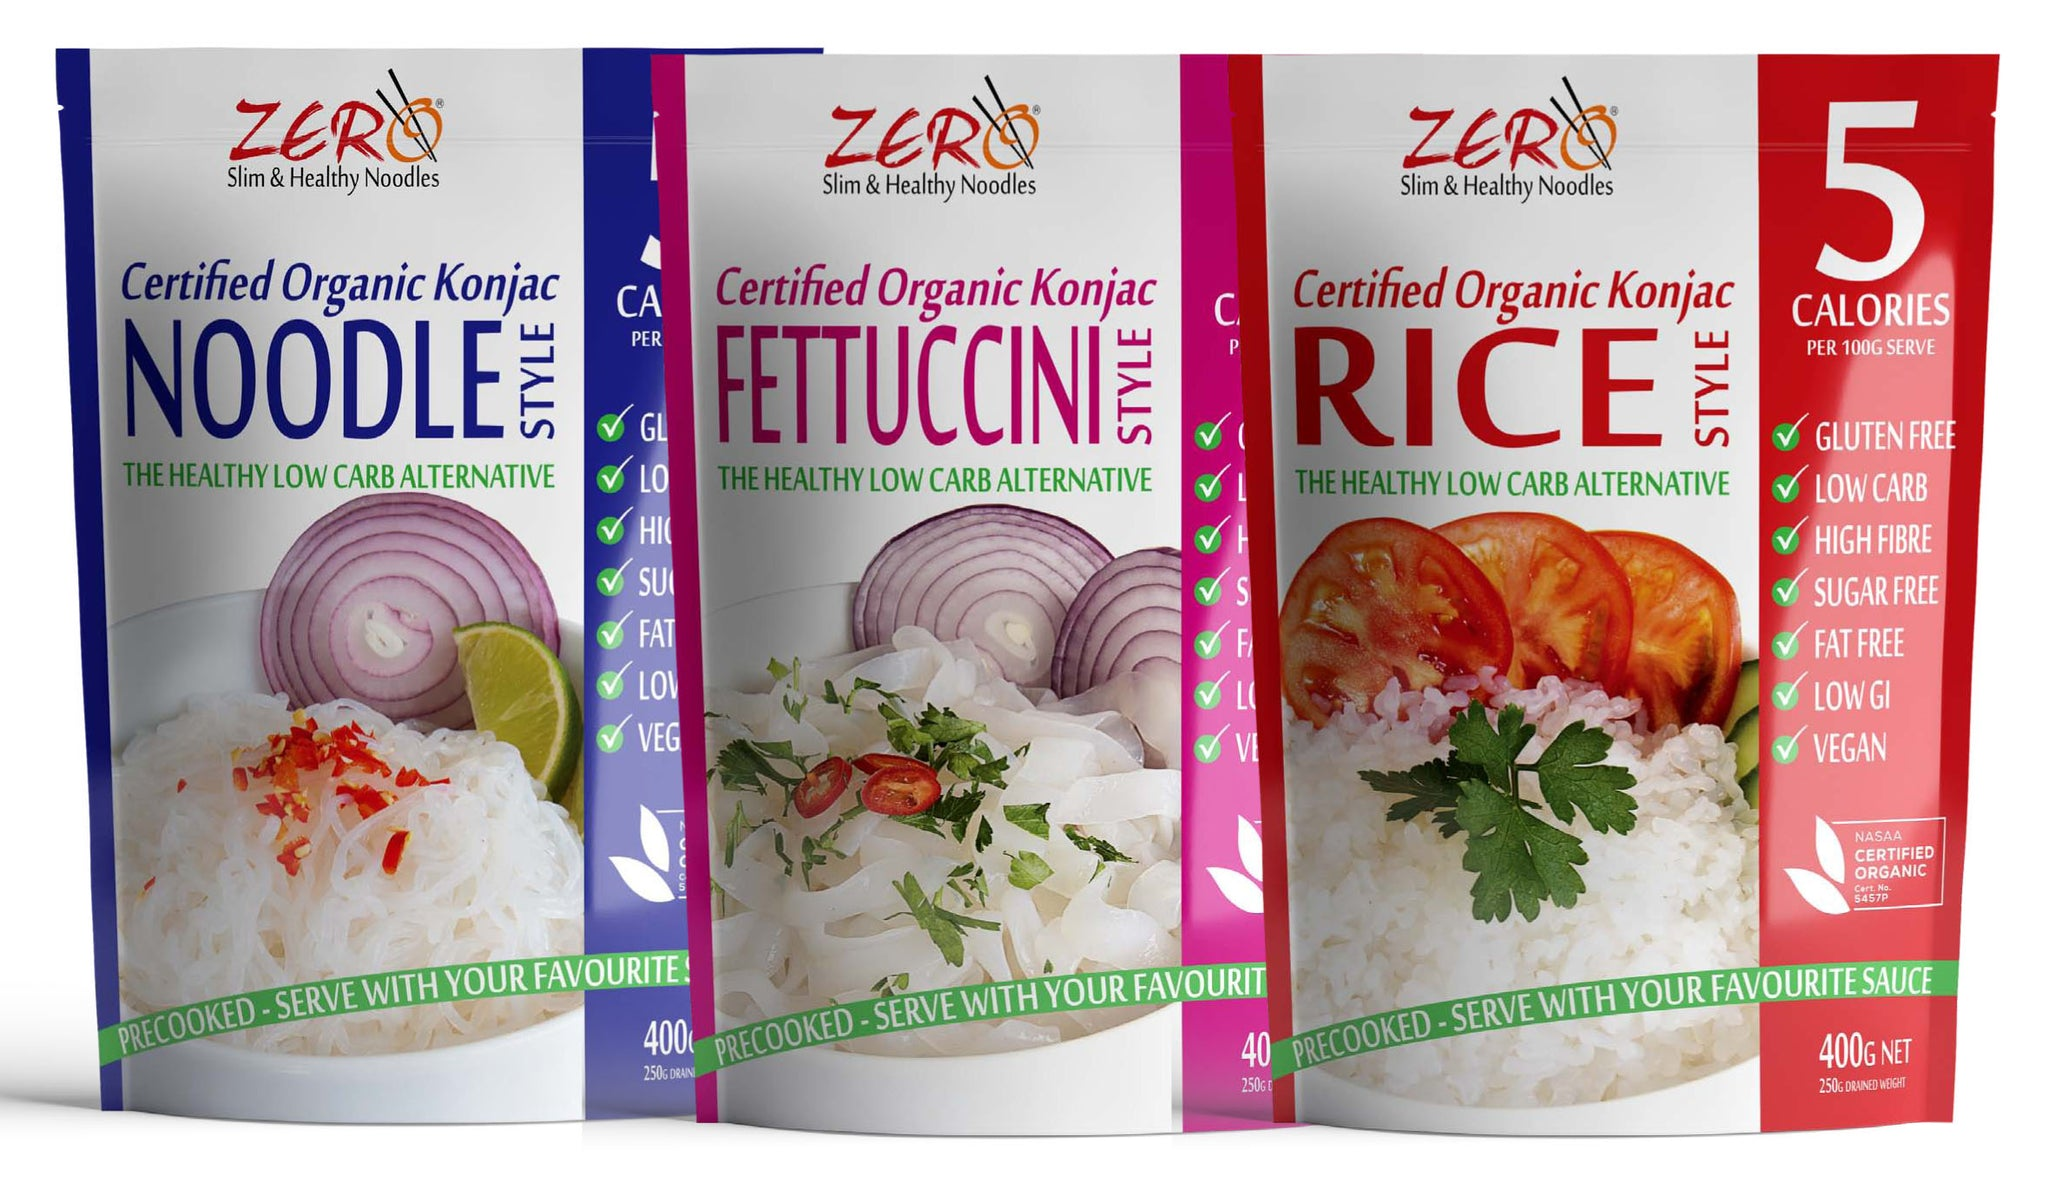 ZERO SALE! 20 Noodles, 20 Fettuccine & 20 Rice & (400g) + FREE DELIVERY!